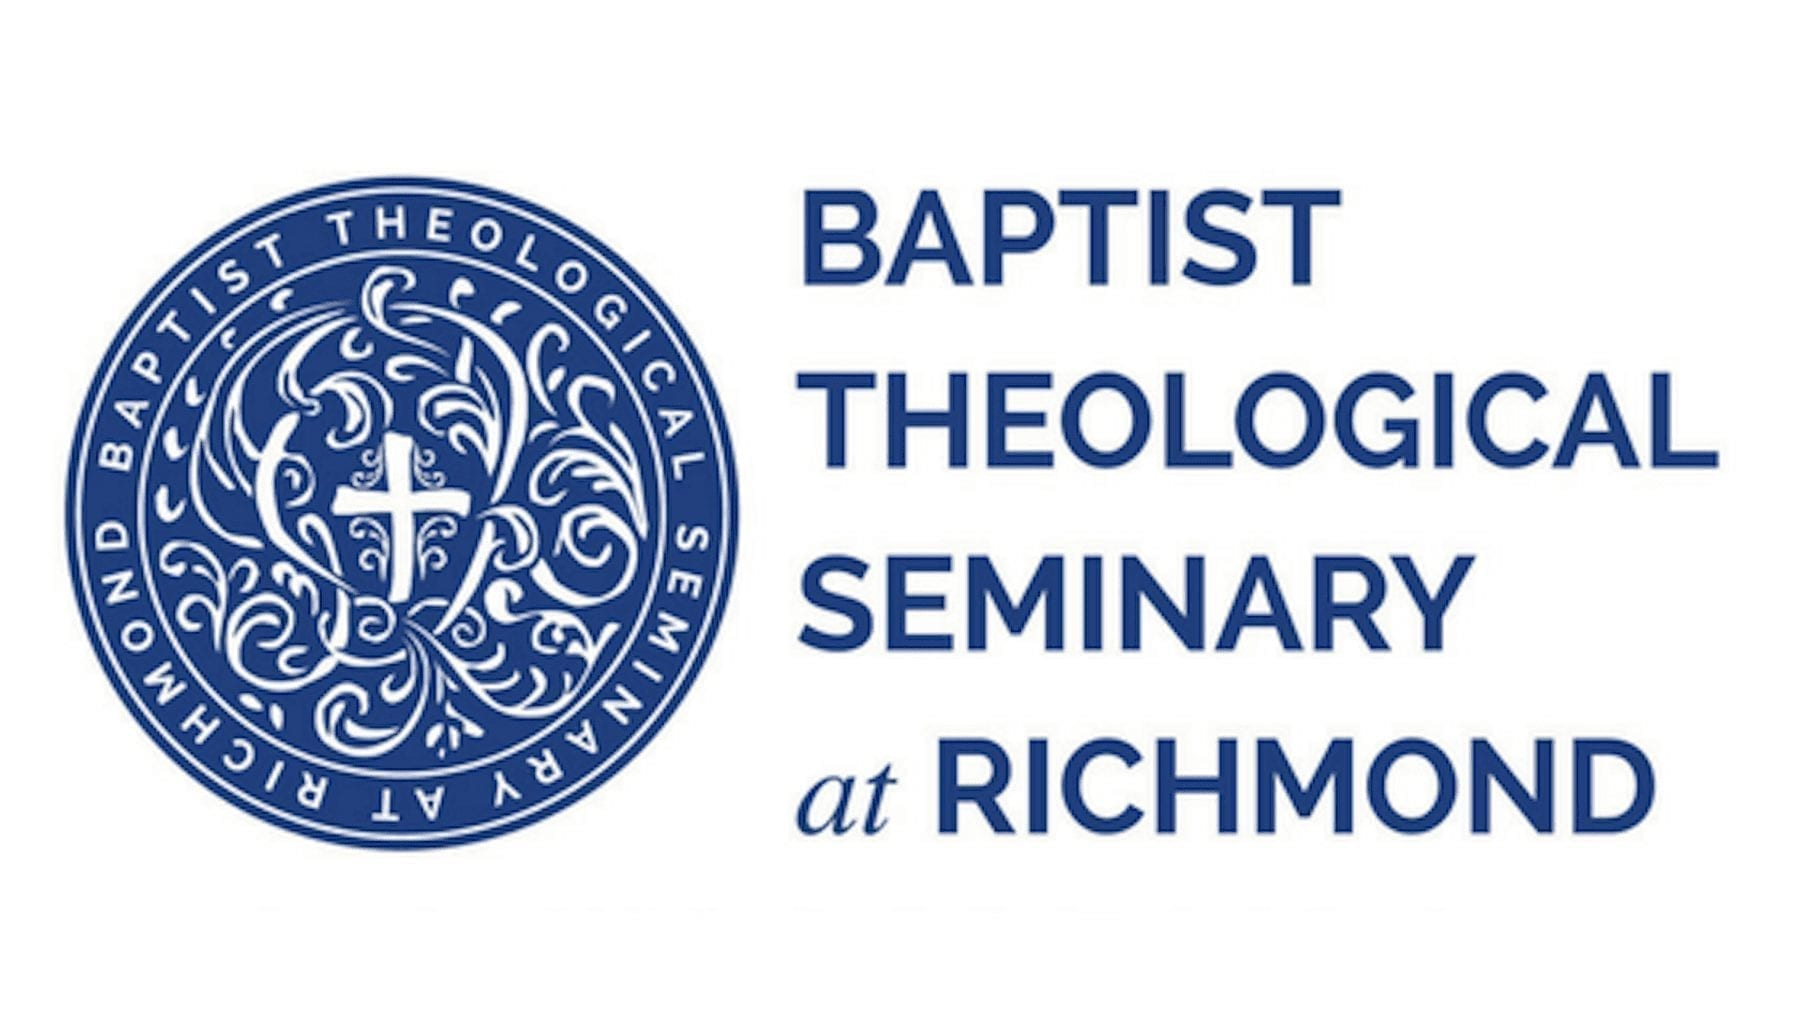 Baptist Theological Seminary at Richmond to Close